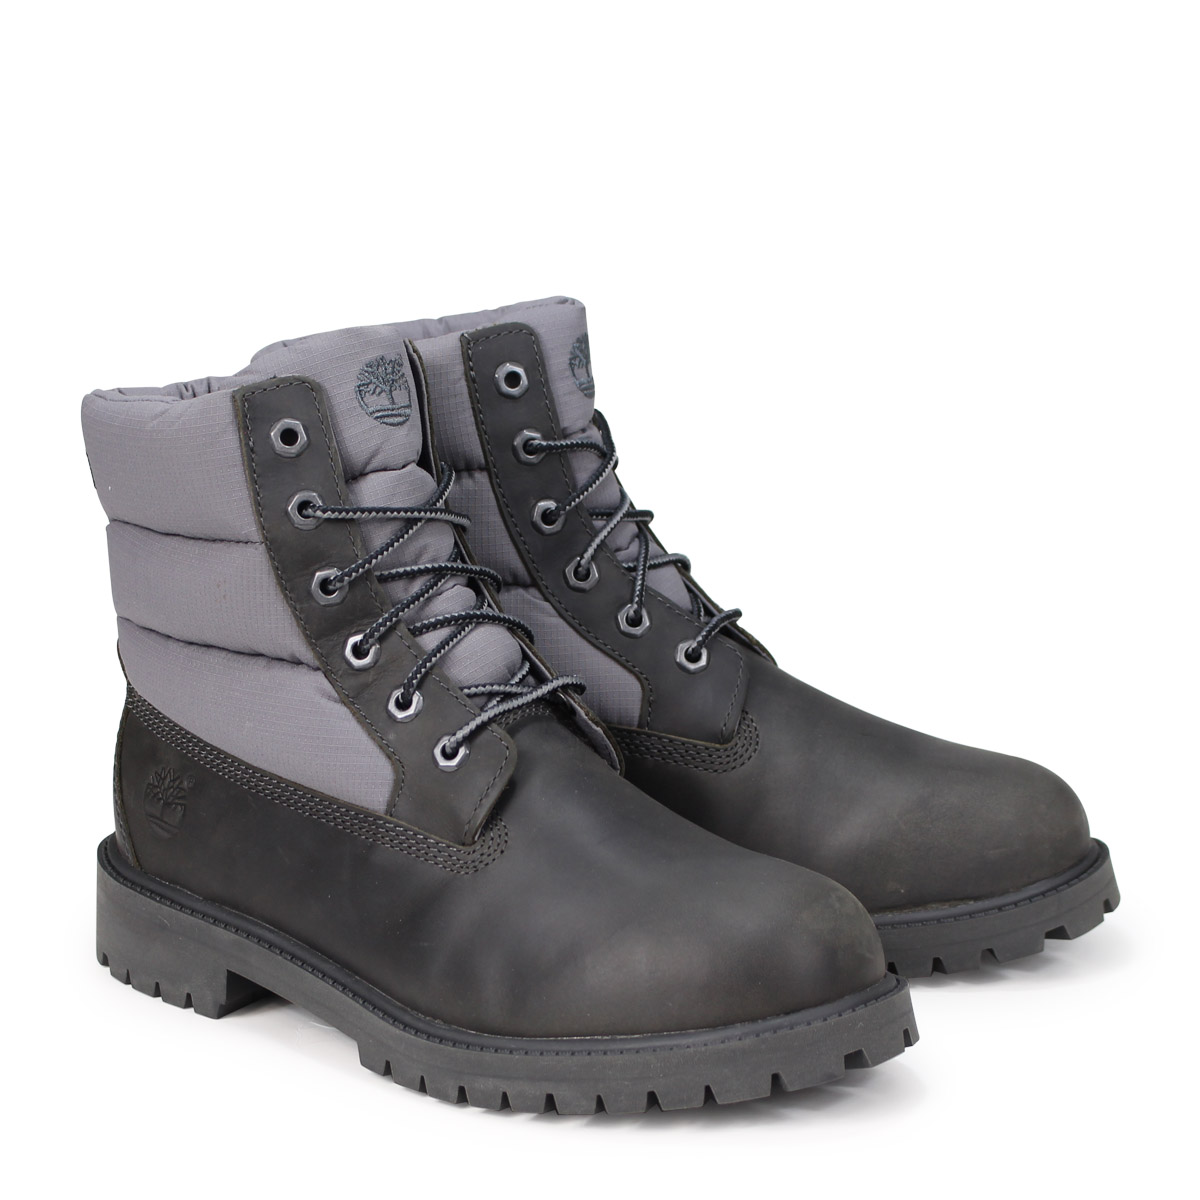 6 inches of Timberland 6 INCH PREMIUM GAITER BOOTS Timberland boots men A1UBP W Wise black [1810]